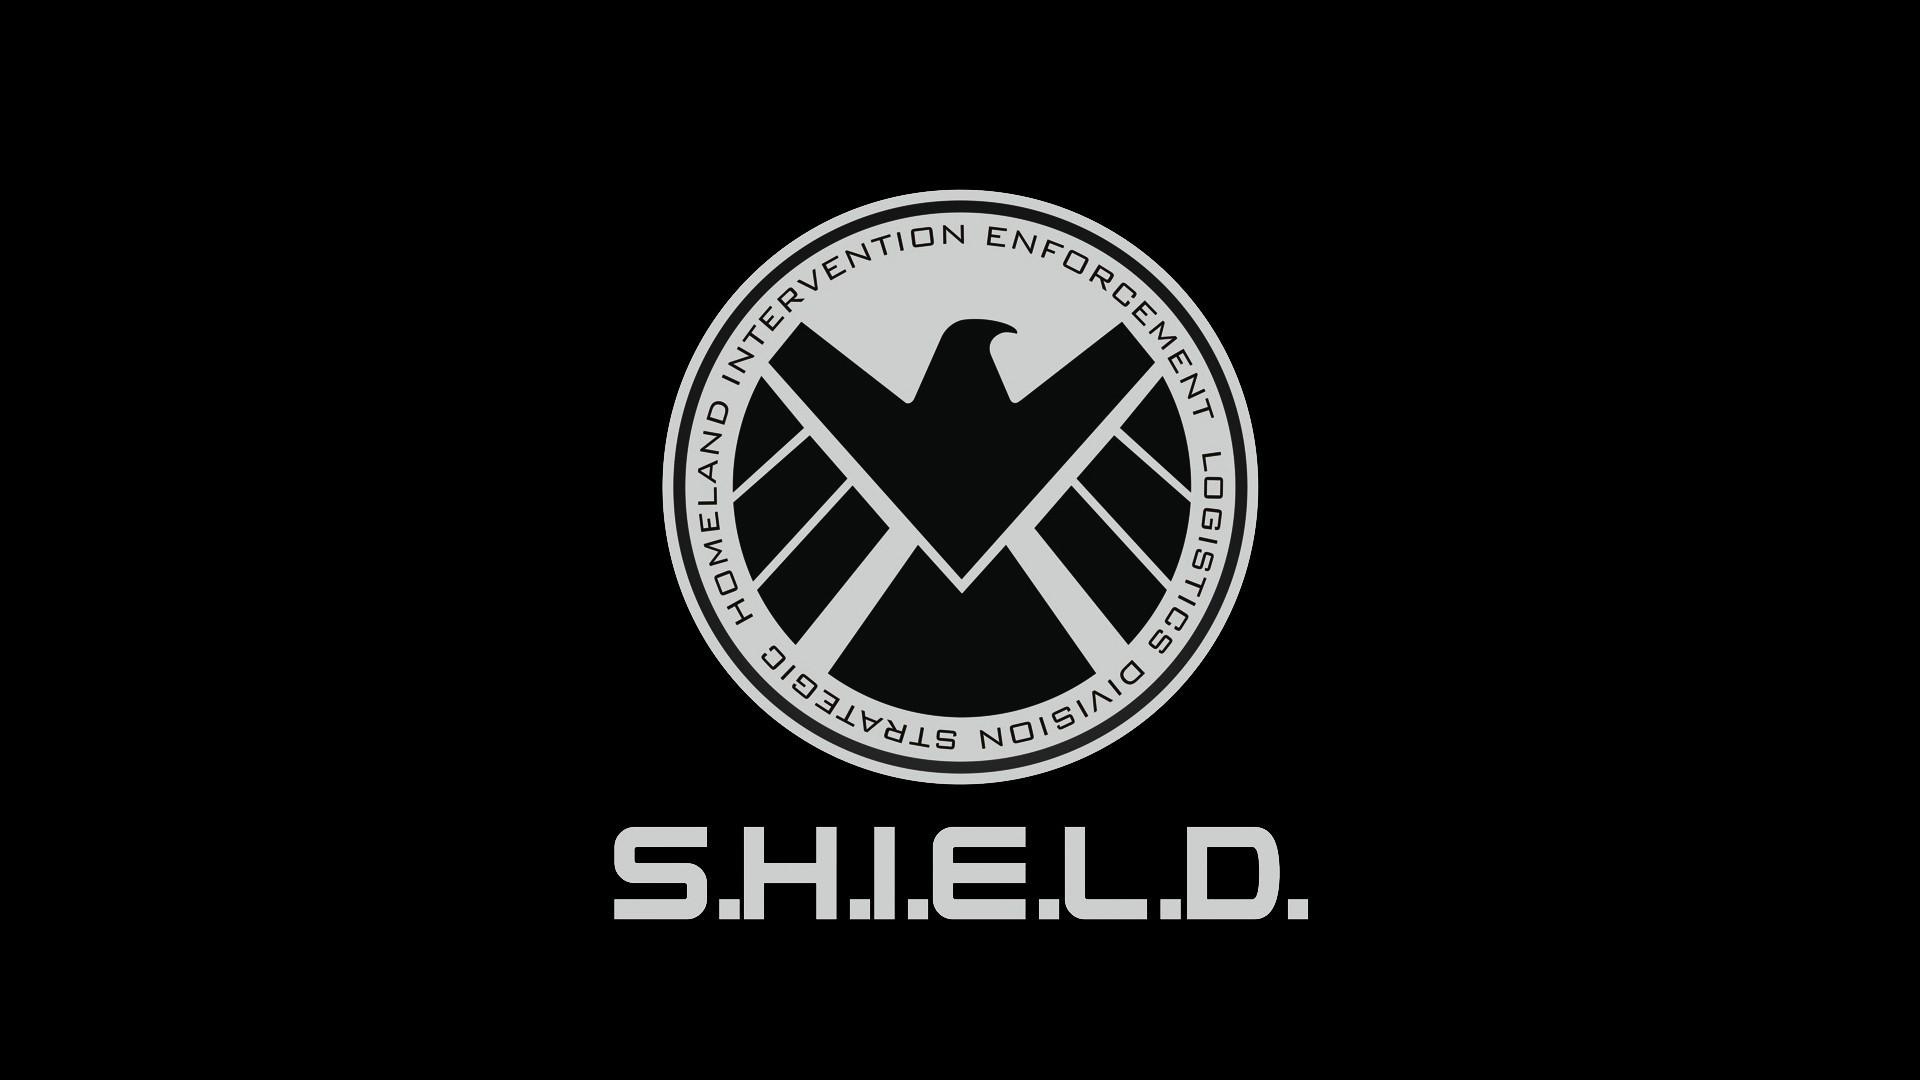 Shield Wallpaper.jpg